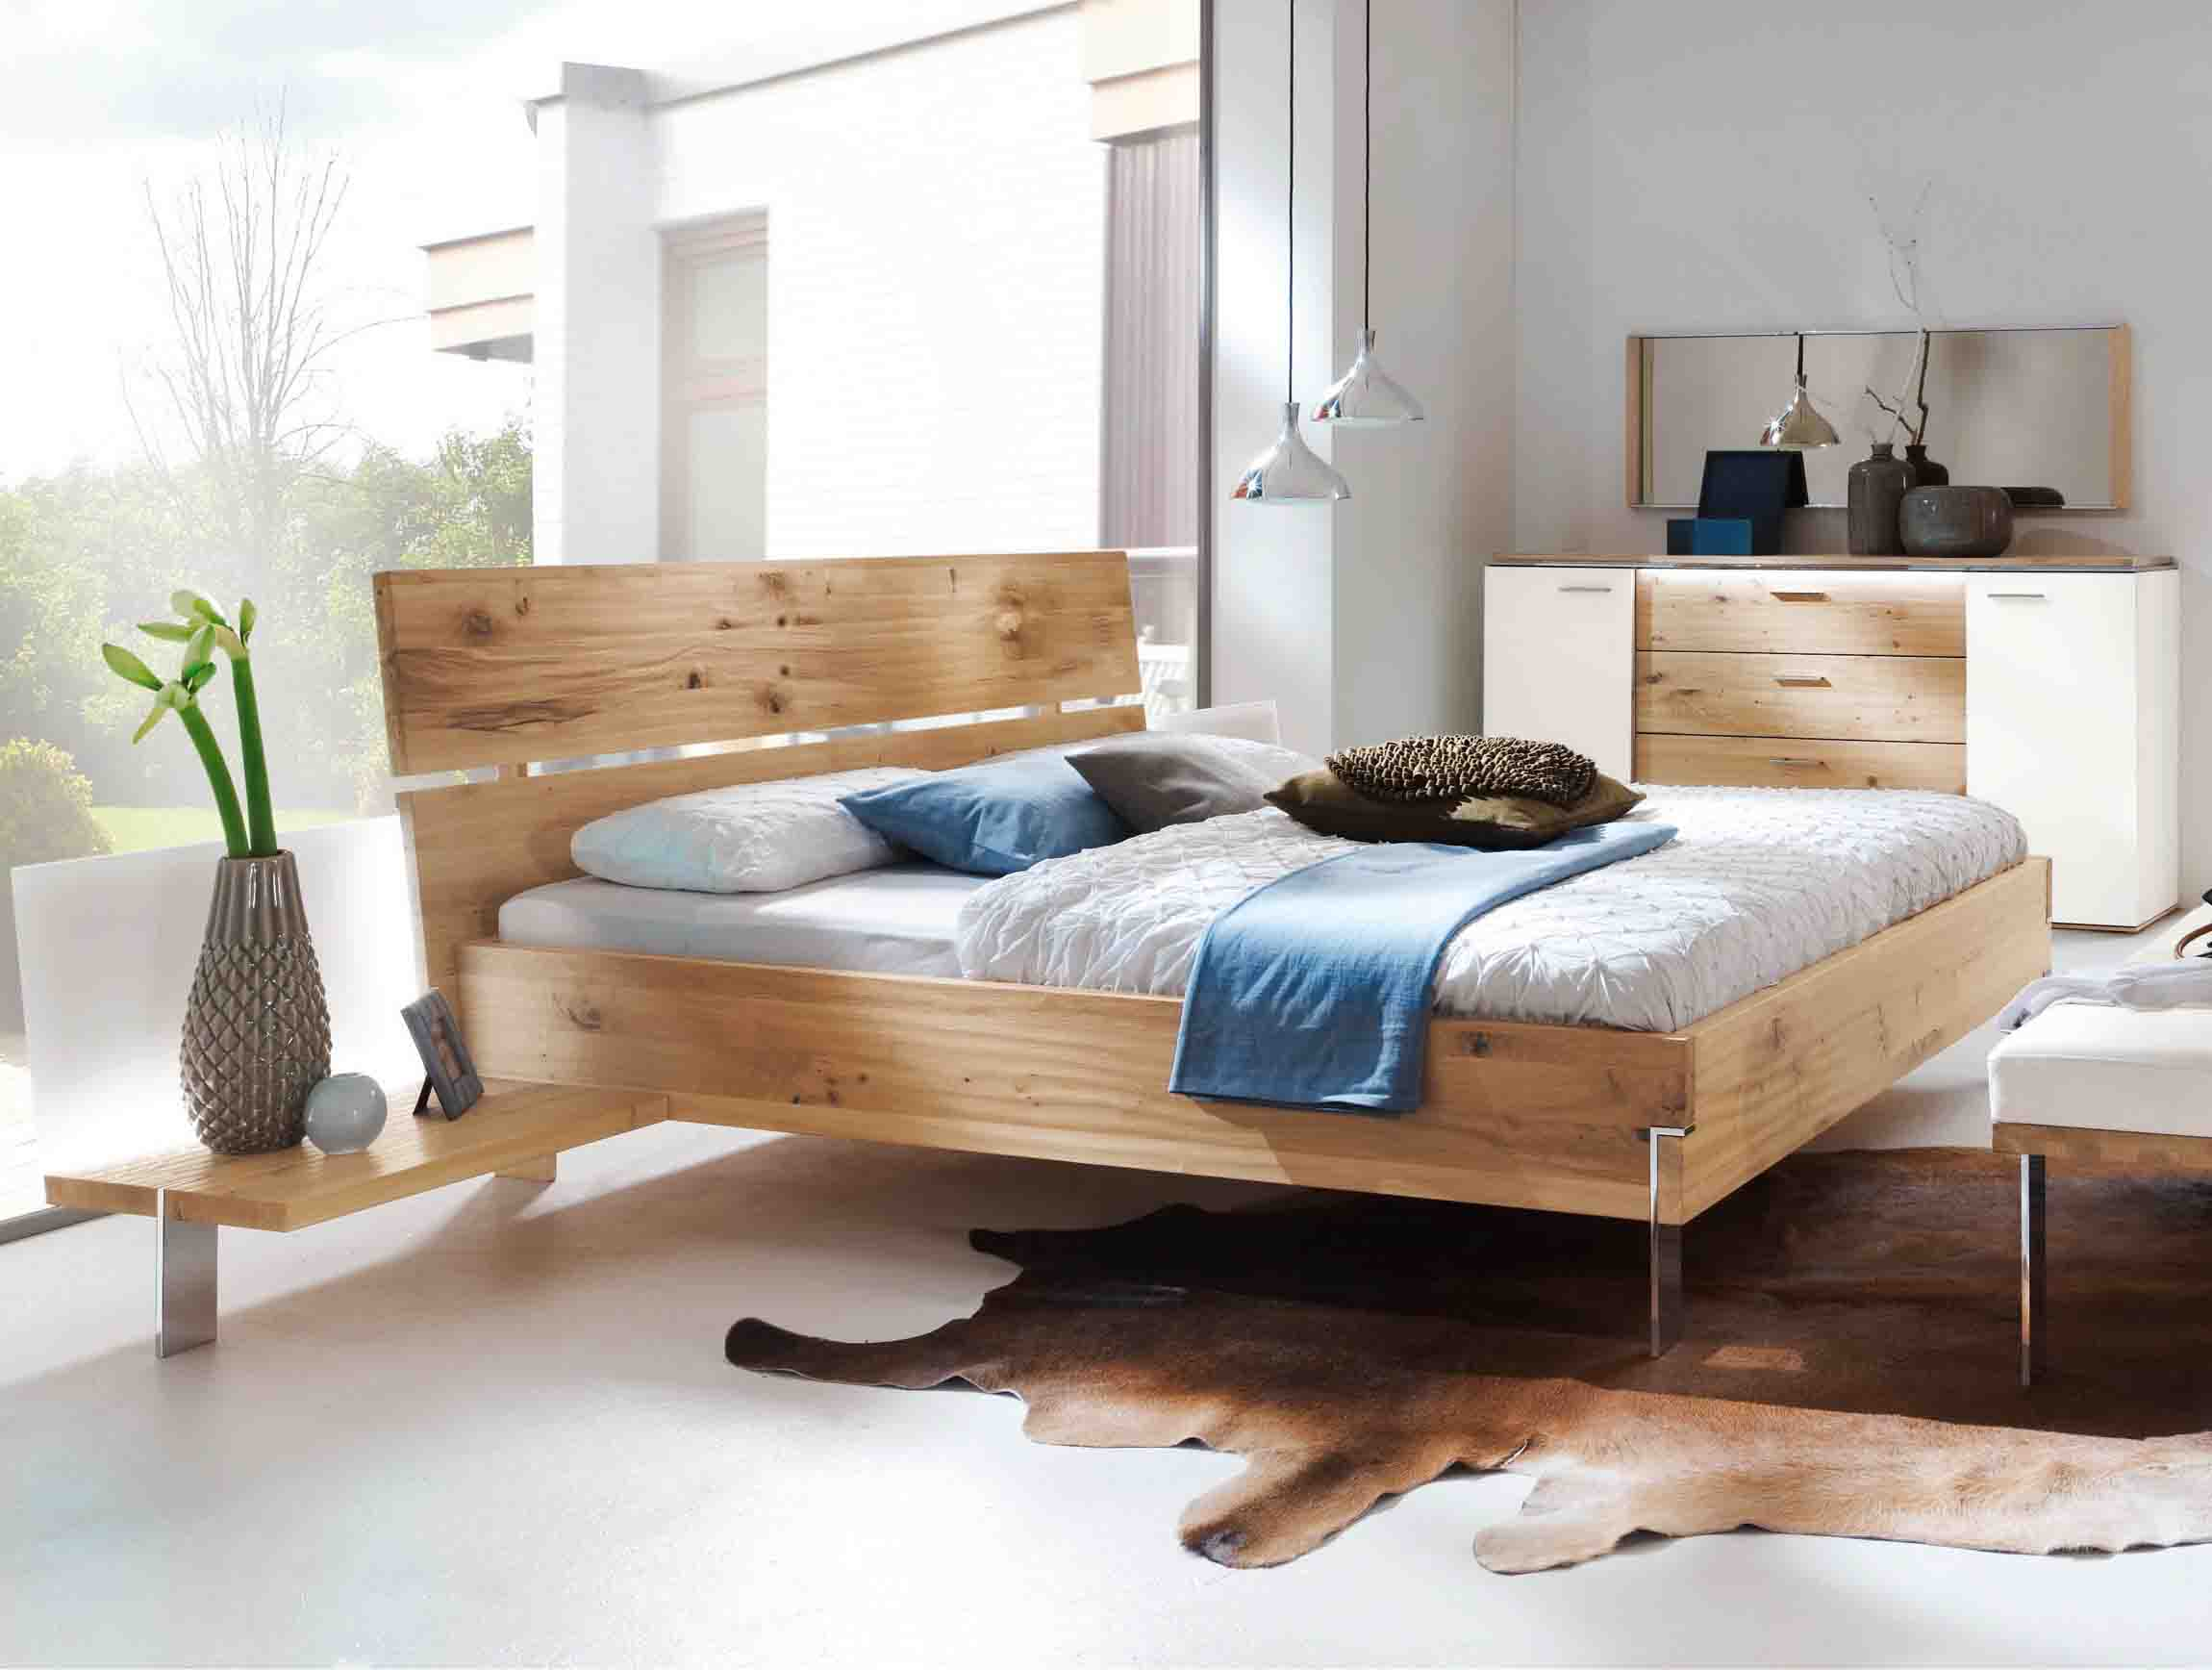 bett thielemeyer loft mit holzkopfteil eiche g nstig. Black Bedroom Furniture Sets. Home Design Ideas